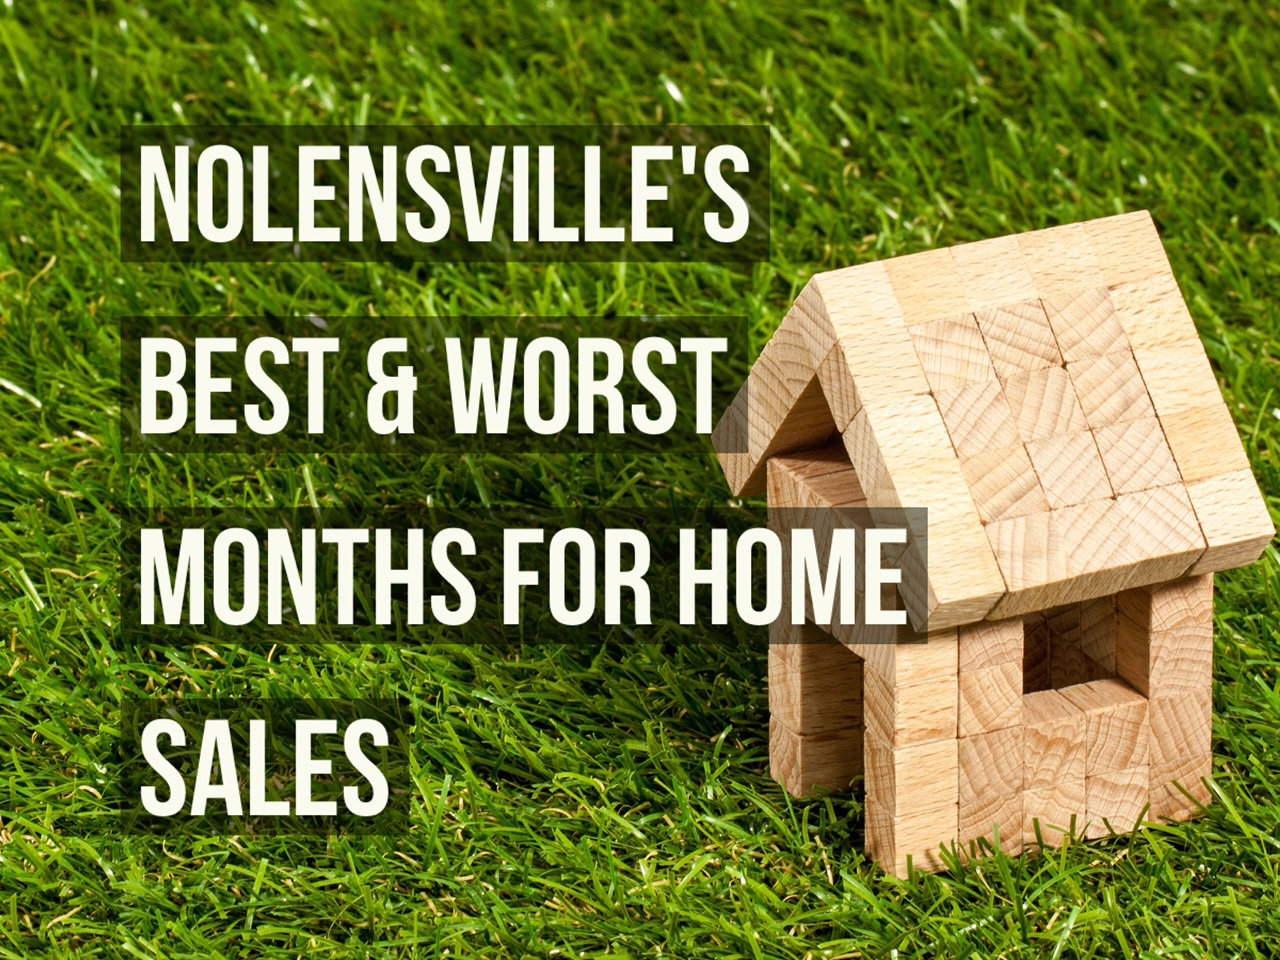 Nolensville's Best and Worst Months for Home Sales - August 2016